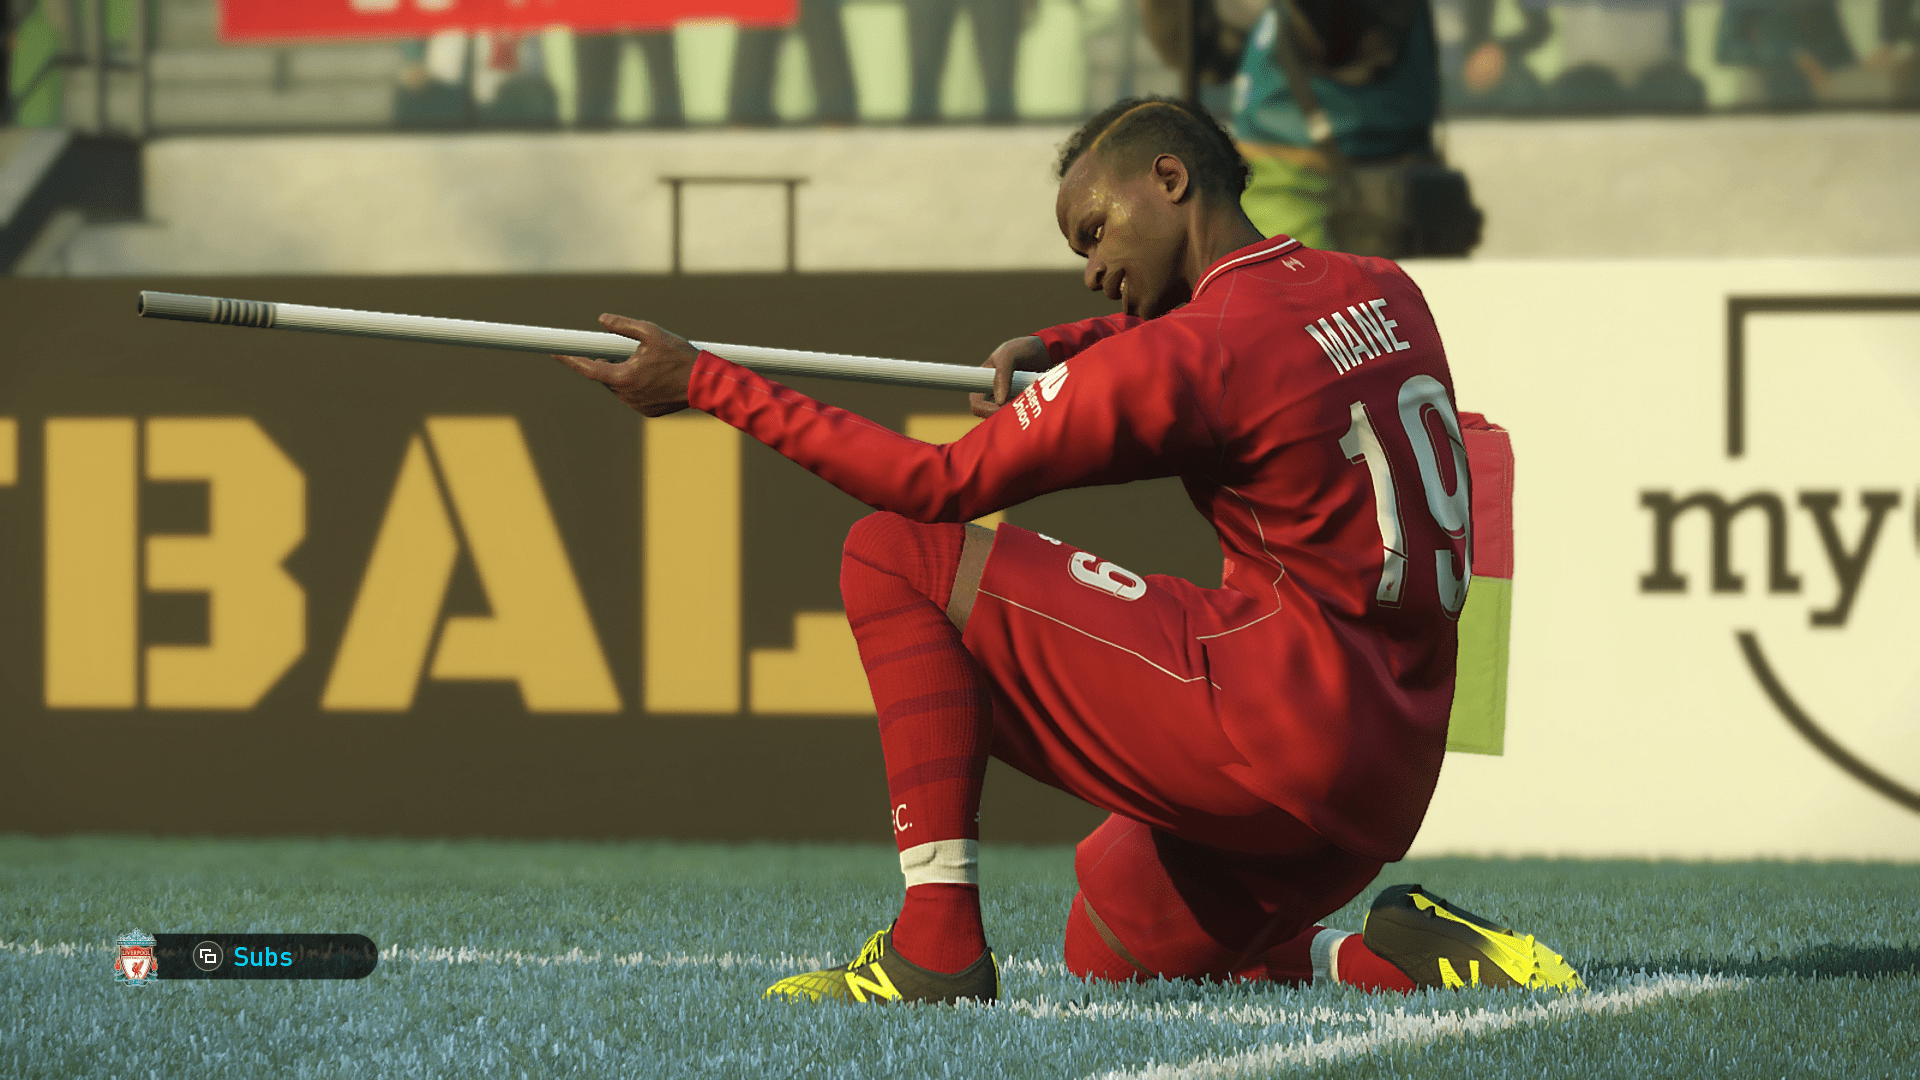 Review - Pro Evolution Soccer 2019 - WayTooManyGames